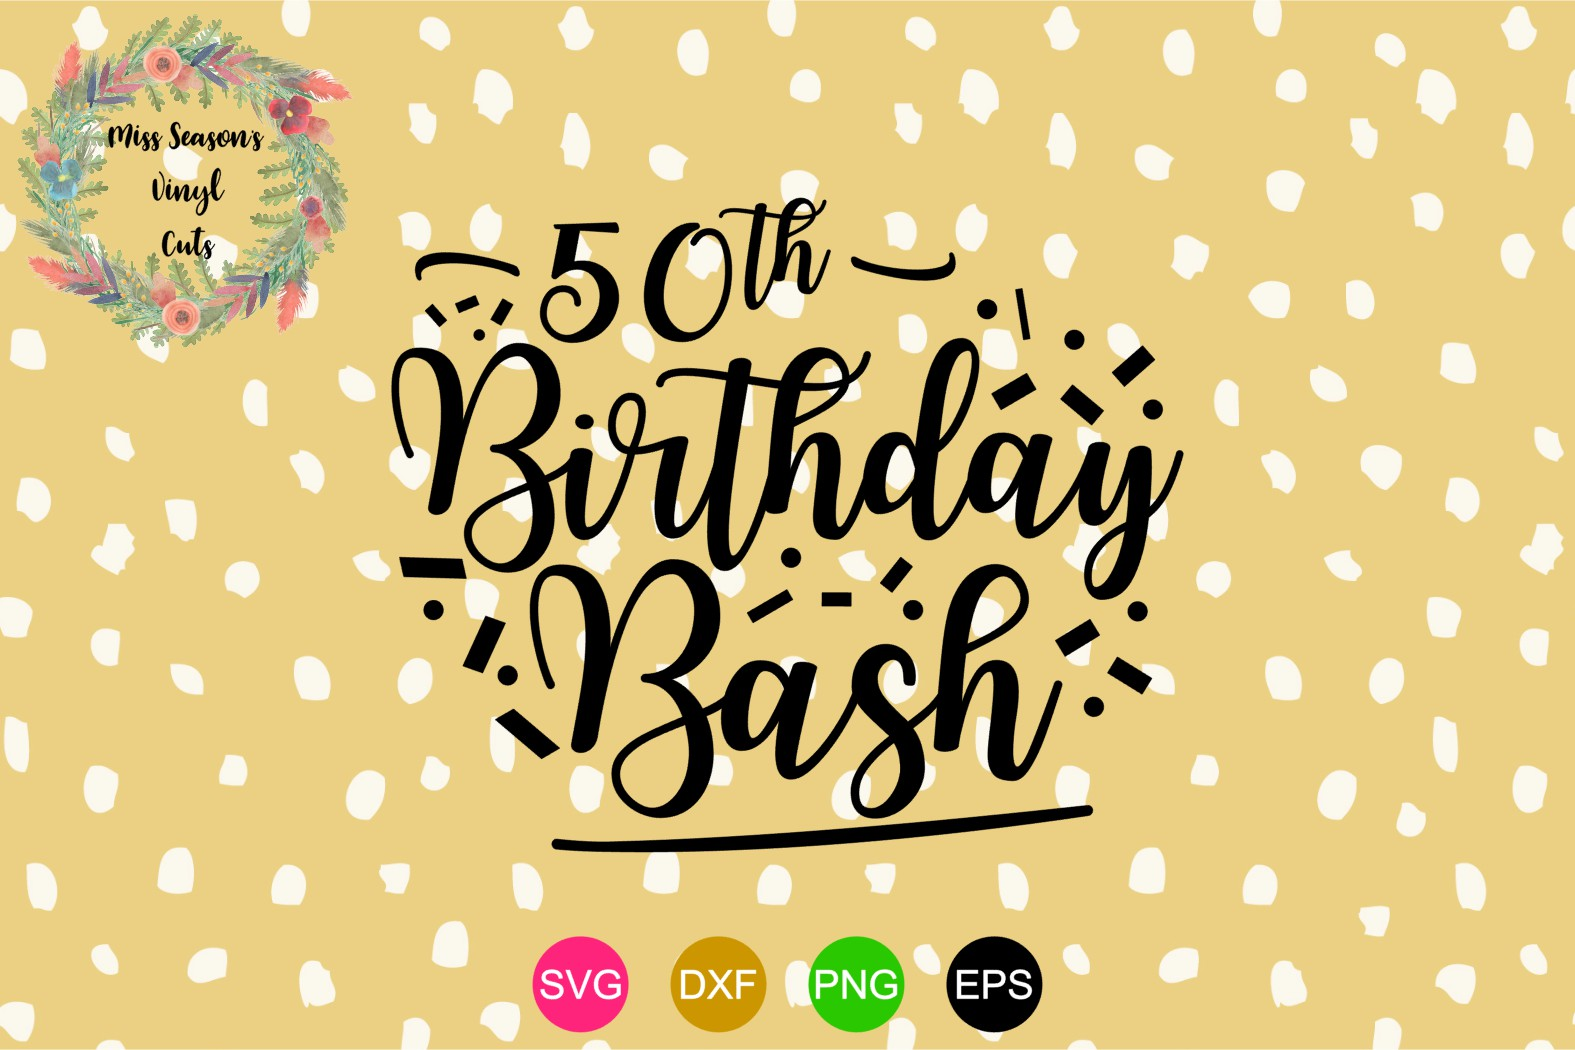 Download Free 50th Birthday Bash With Numbers Grafico Por for Cricut Explore, Silhouette and other cutting machines.